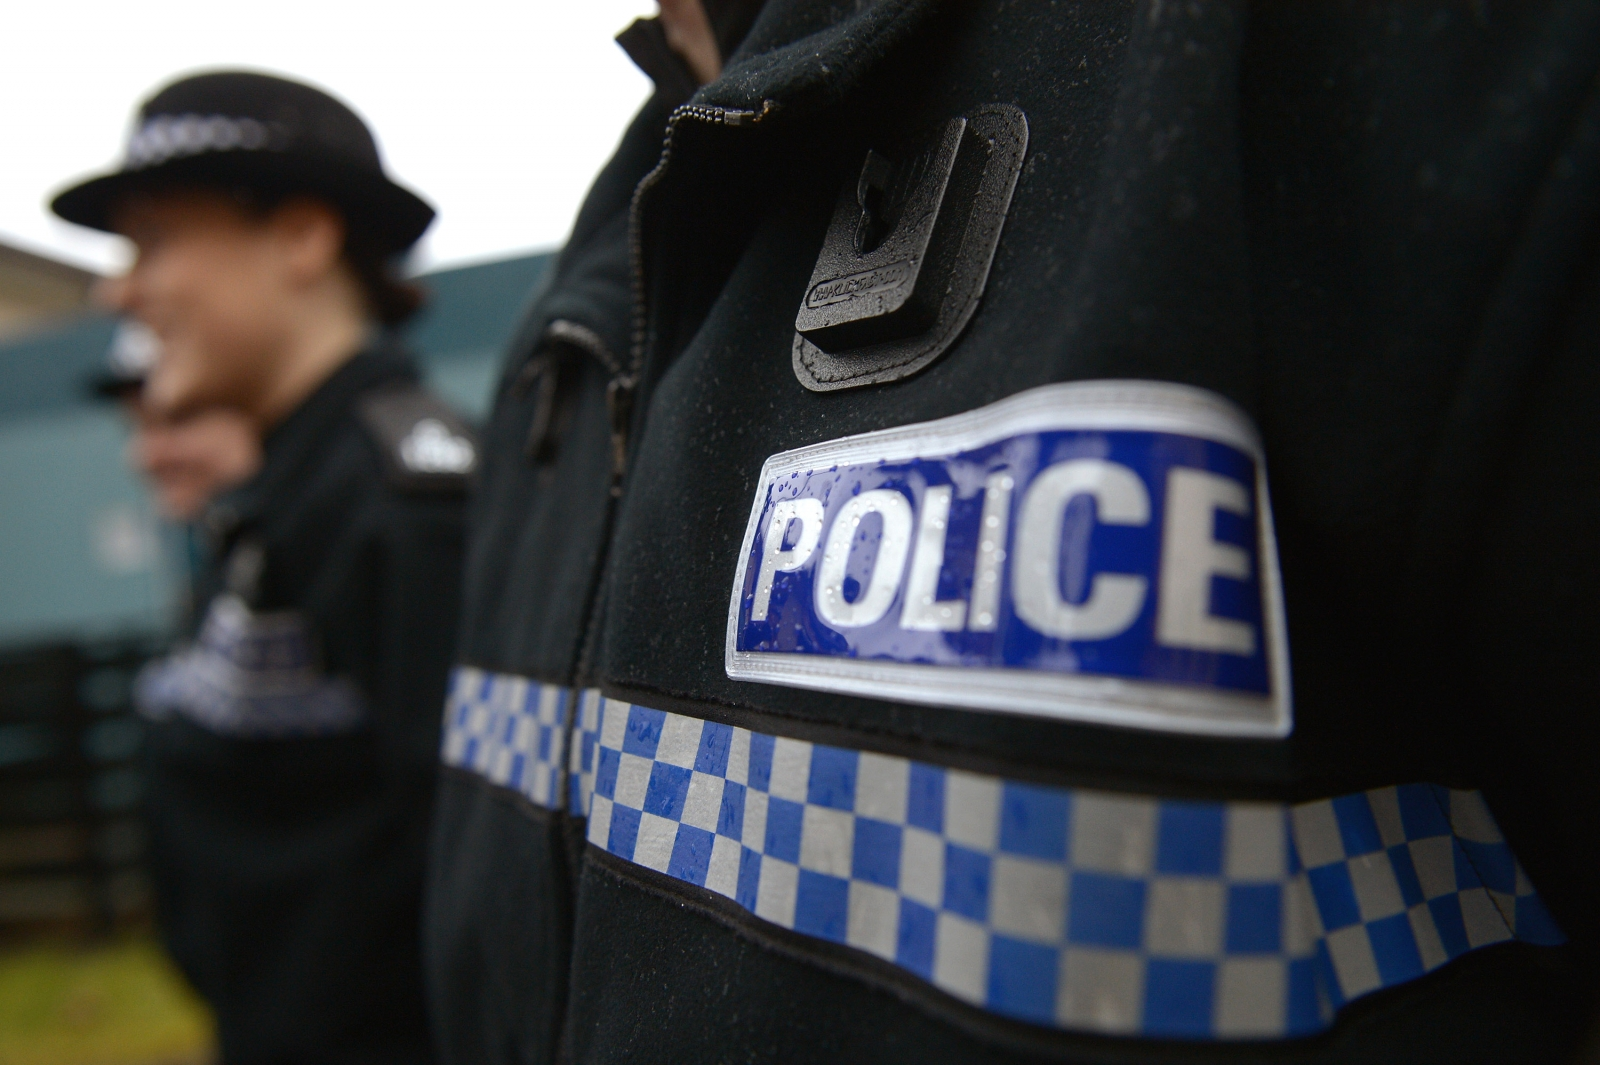 West Midlands Counter Terrorism Unit arrested man on suspicion of planning acts of terror